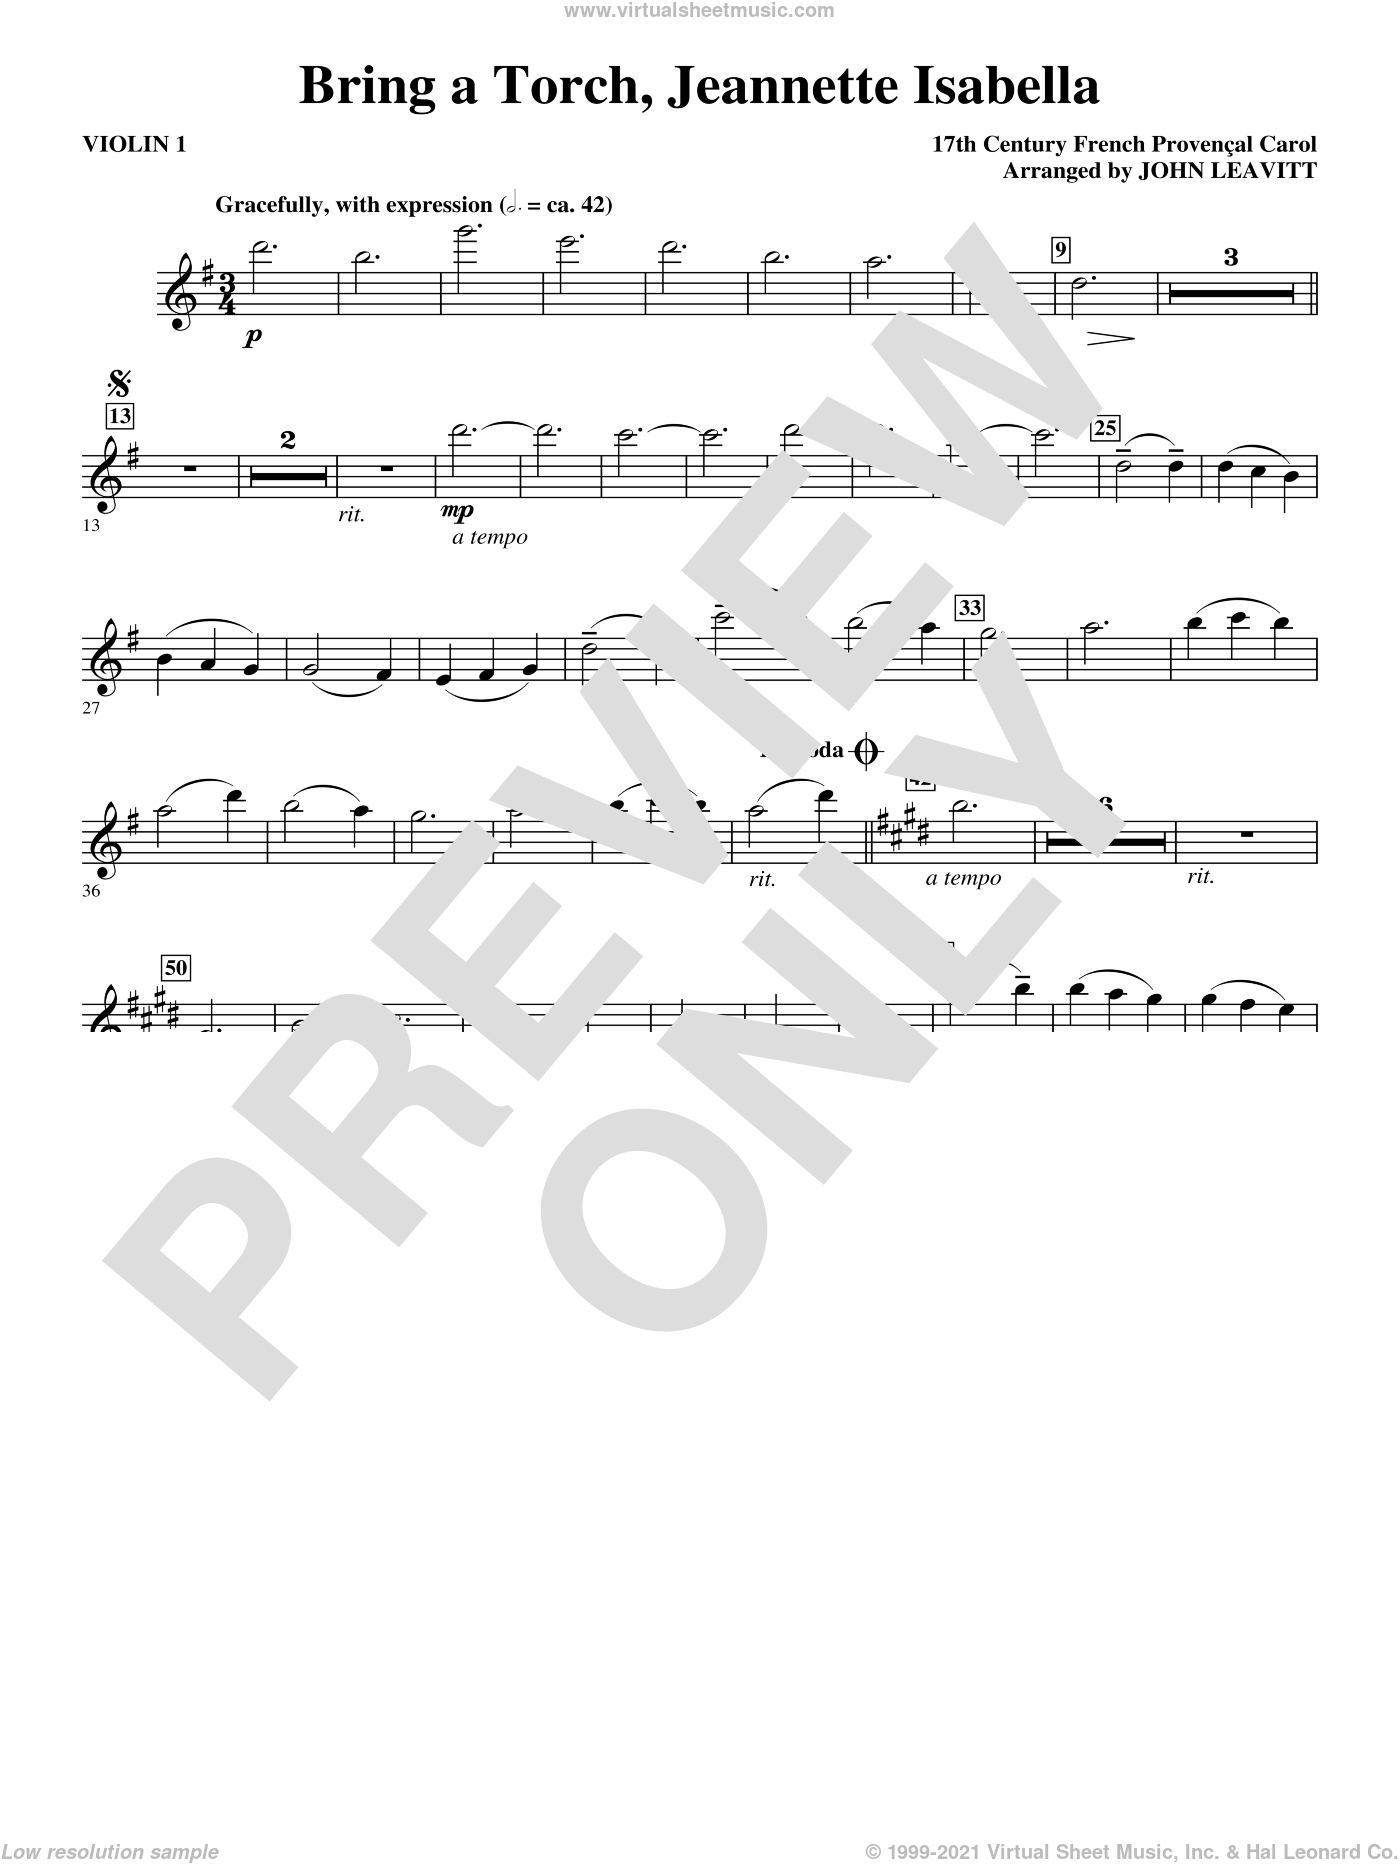 Bring a Torch, Jeanette Isabella sheet music for orchestra/band (violin 1) by John Leavitt and Miscellaneous, intermediate skill level